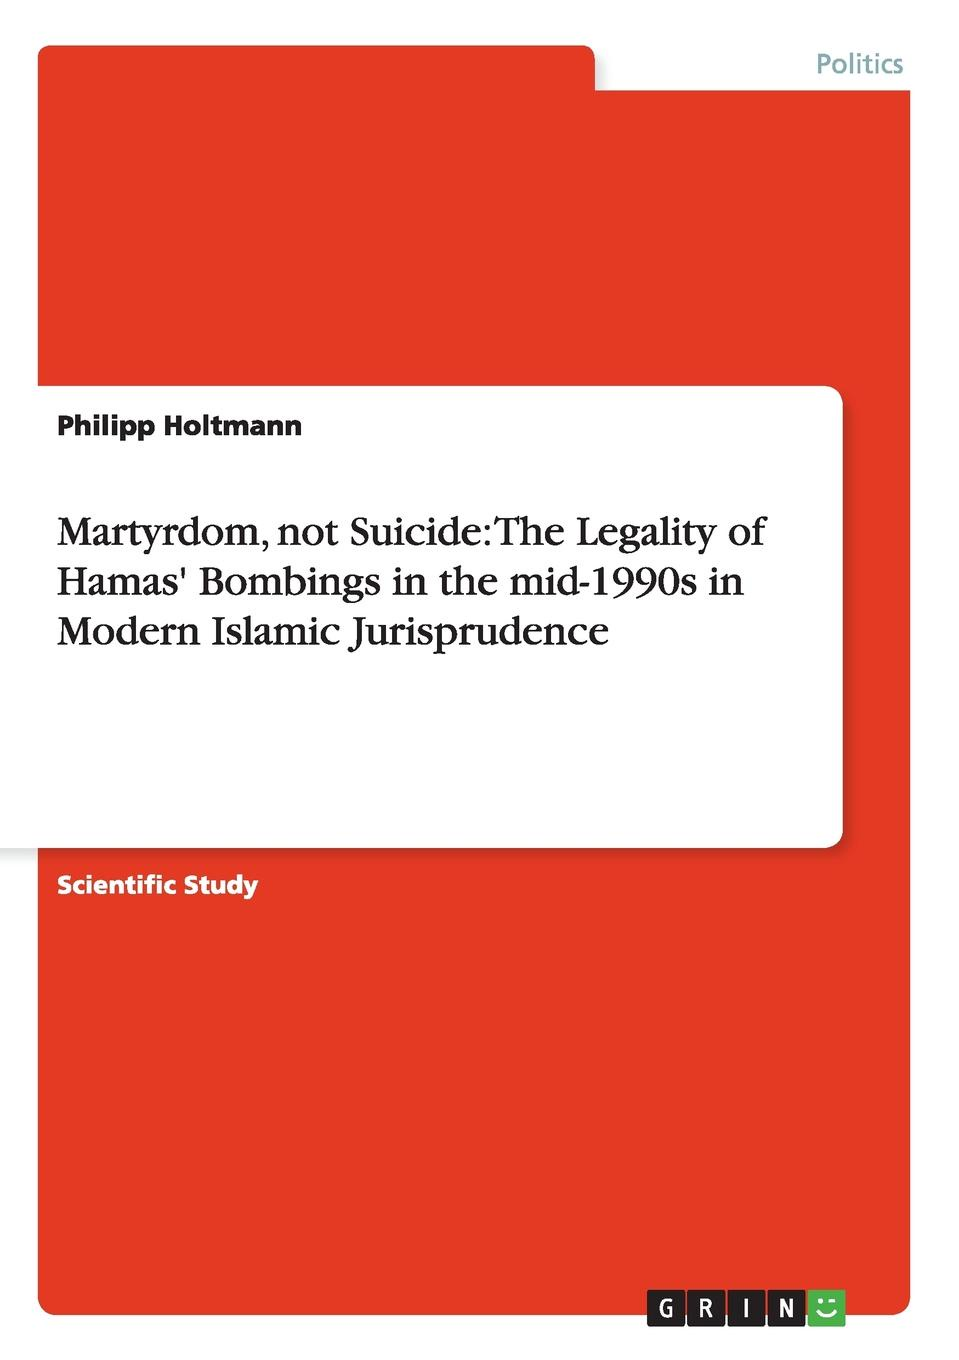 лучшая цена Philipp Holtmann Martyrdom, not Suicide. The Legality of Hamas. Bombings in the mid-1990s in Modern Islamic Jurisprudence